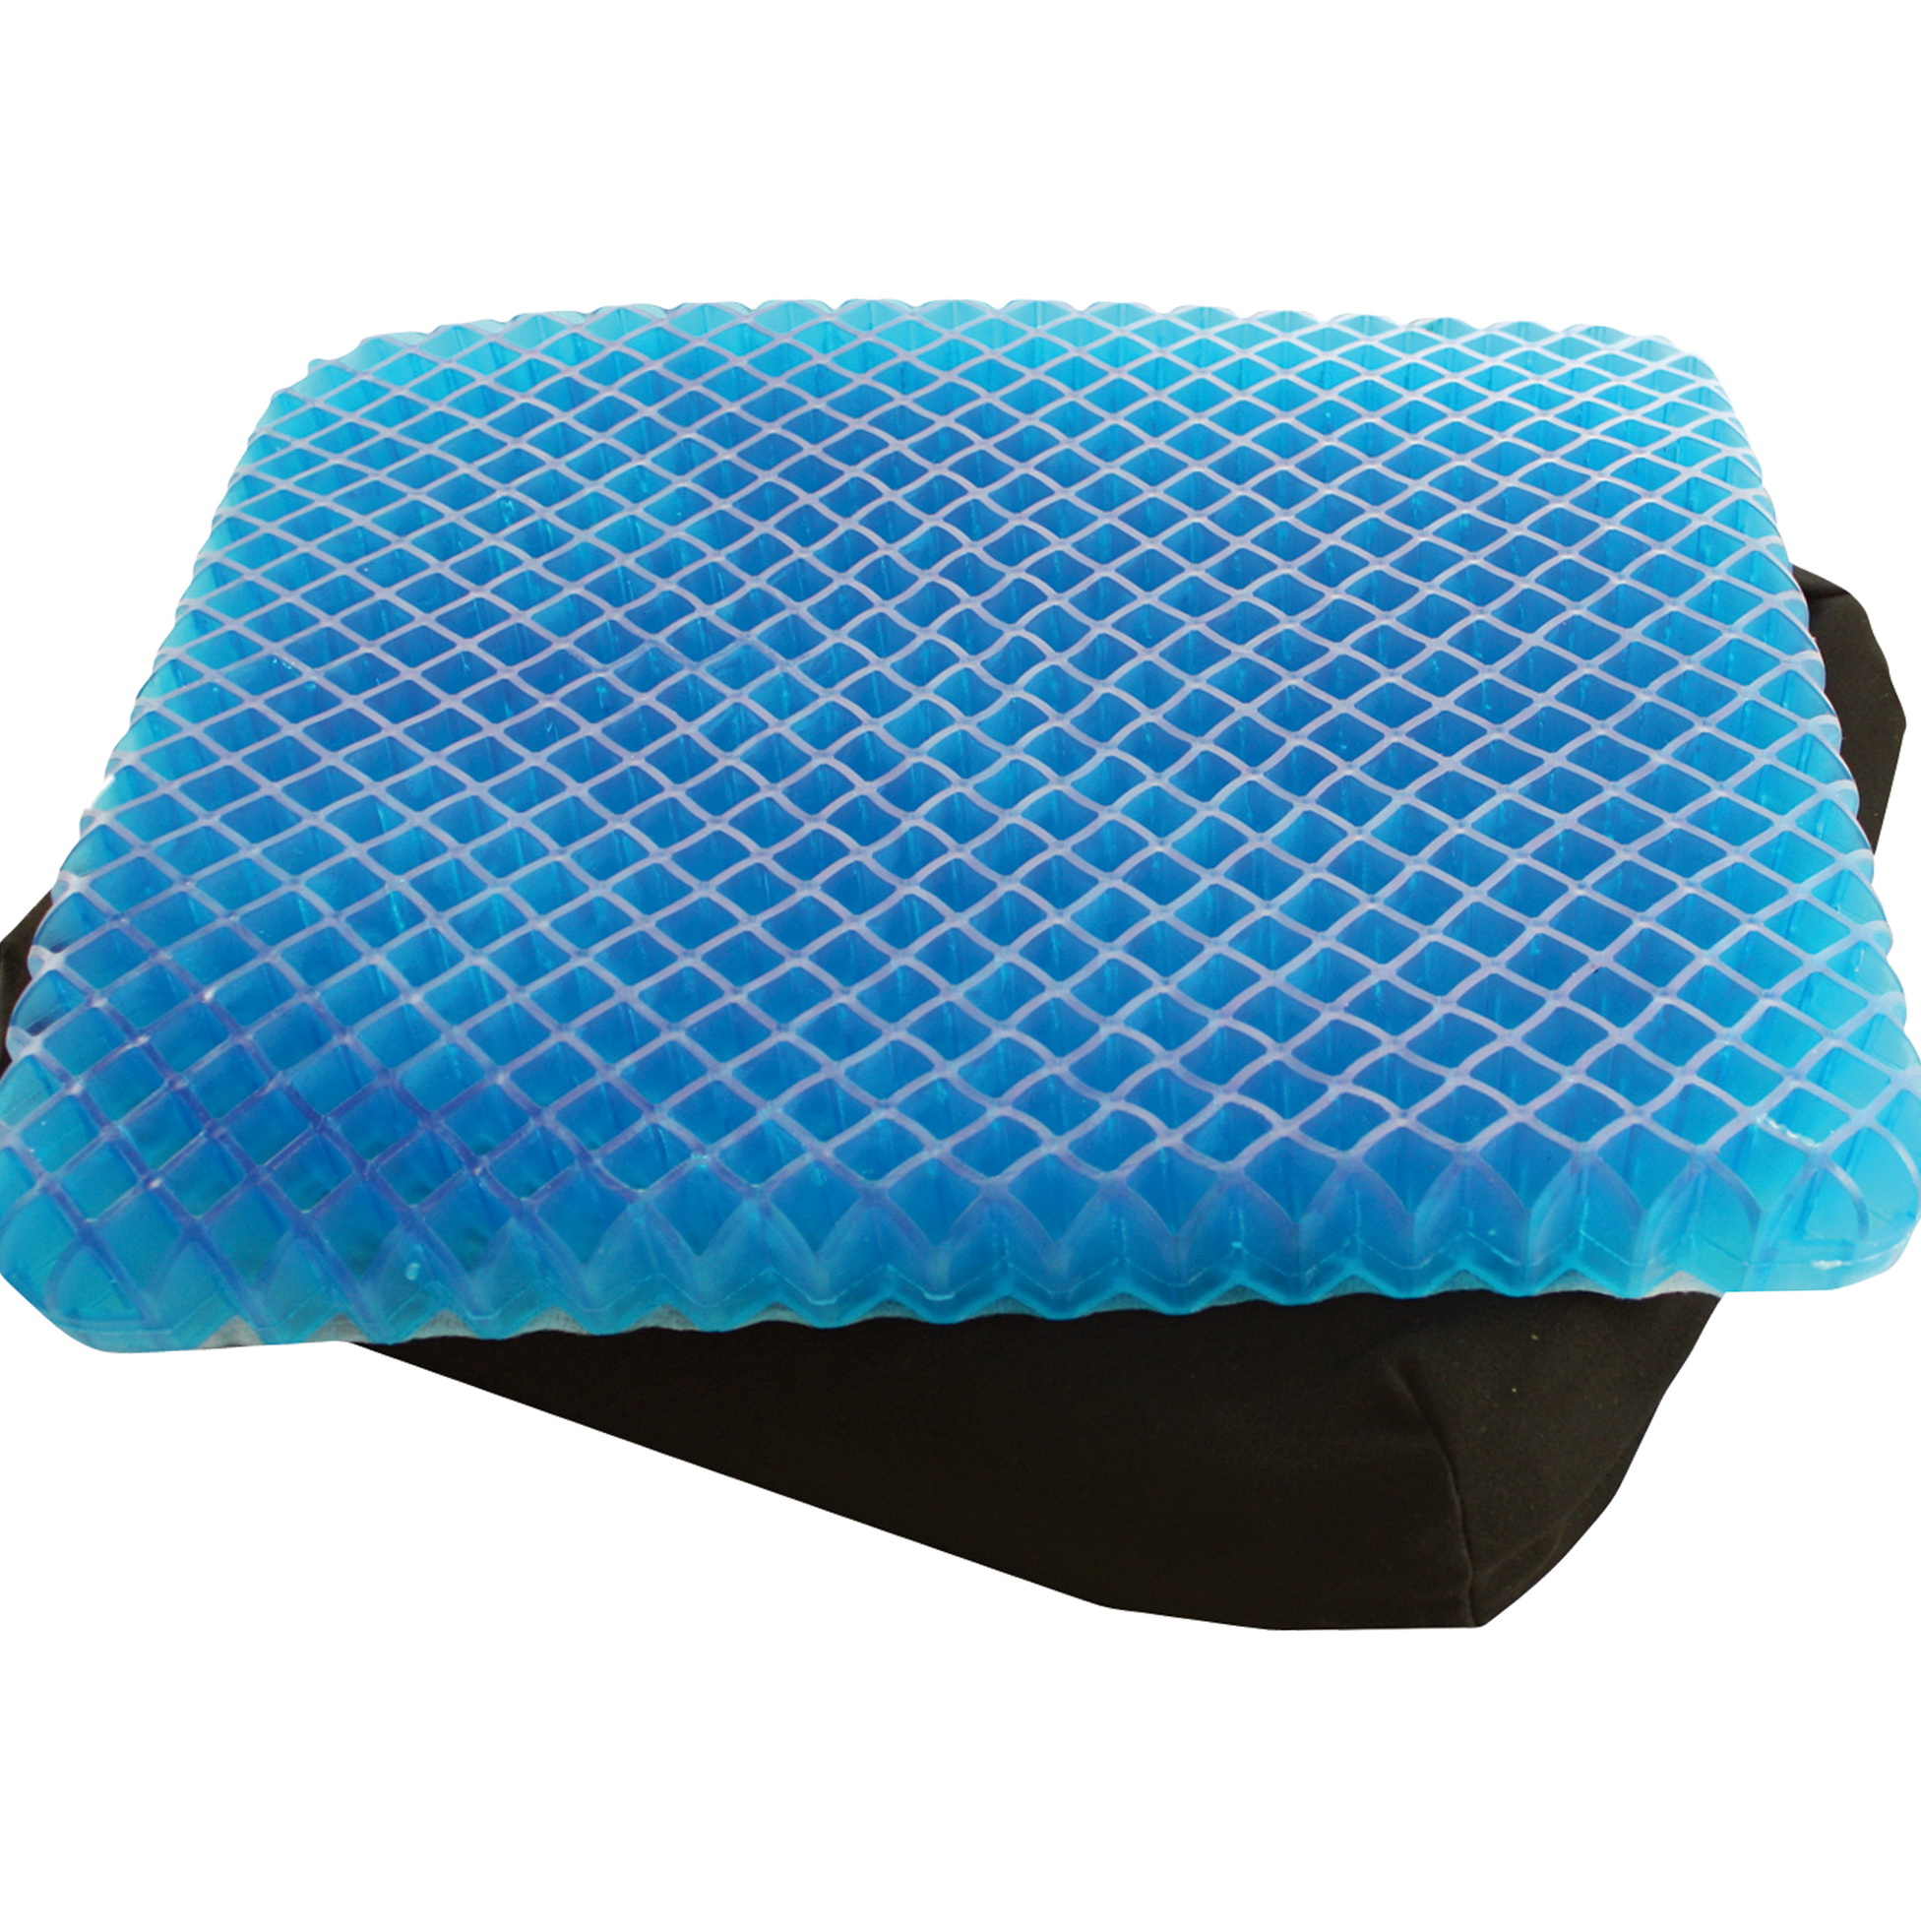 Gel Pad For Chair Gel Seat Cushions For Office Chairs Home Design Ideas